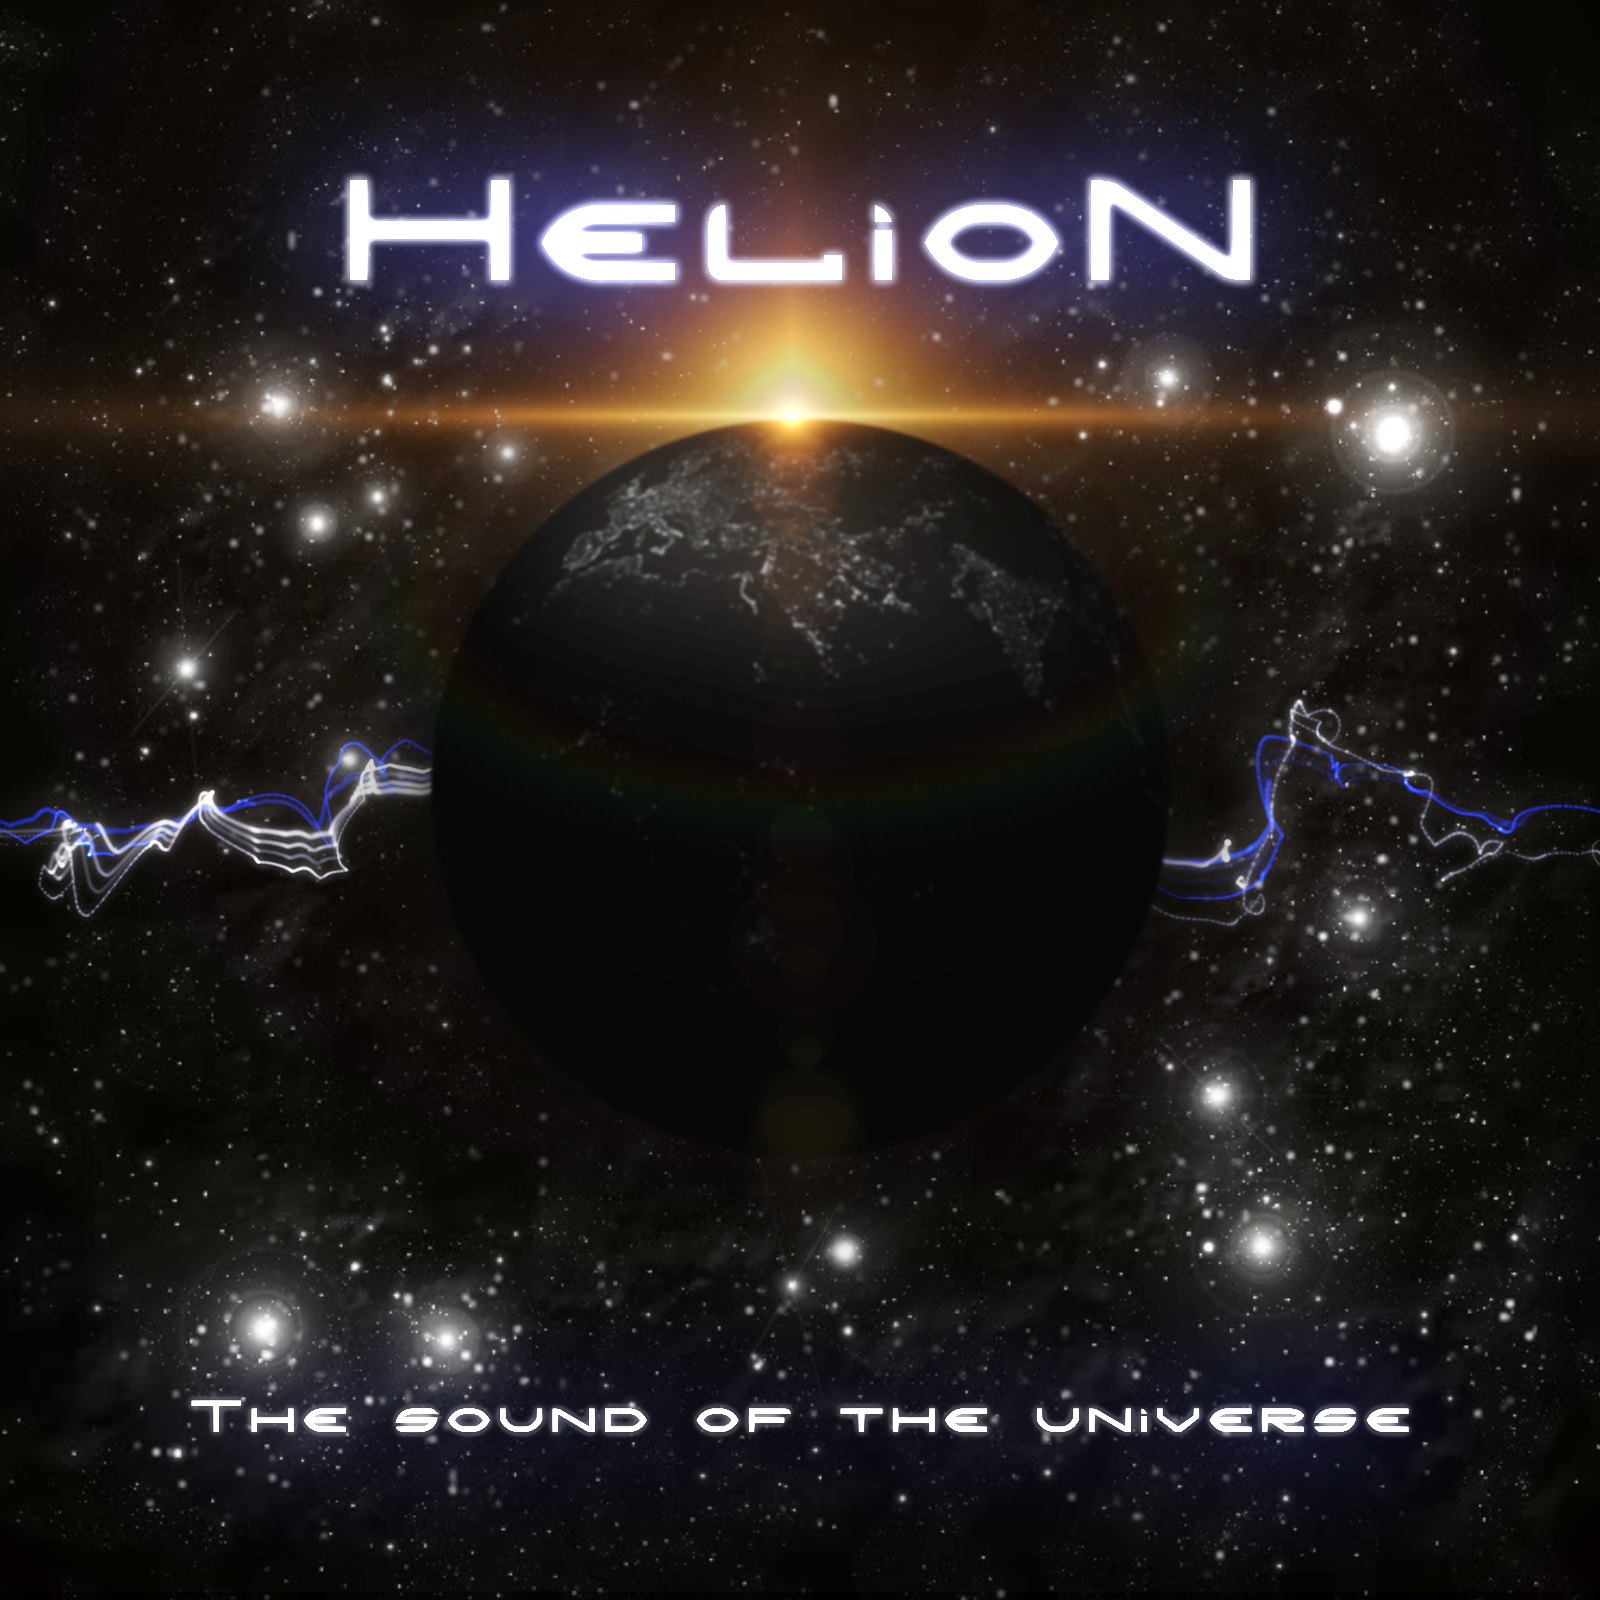 Helion - The Sound of the Universe - Single